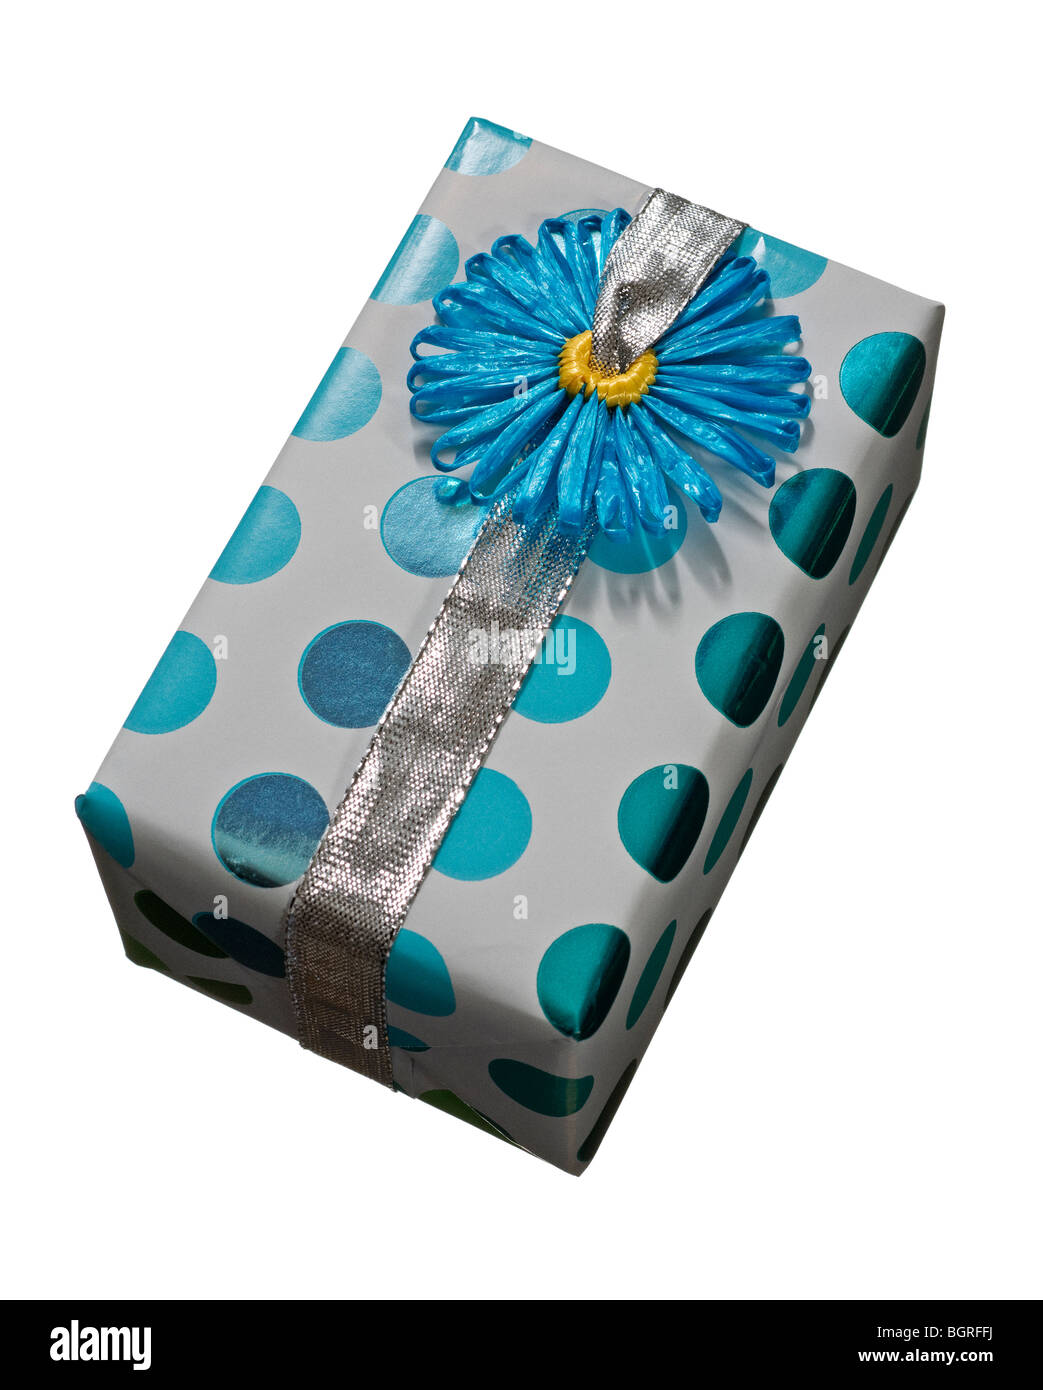 A wrapped gift against a white background. - Stock Image